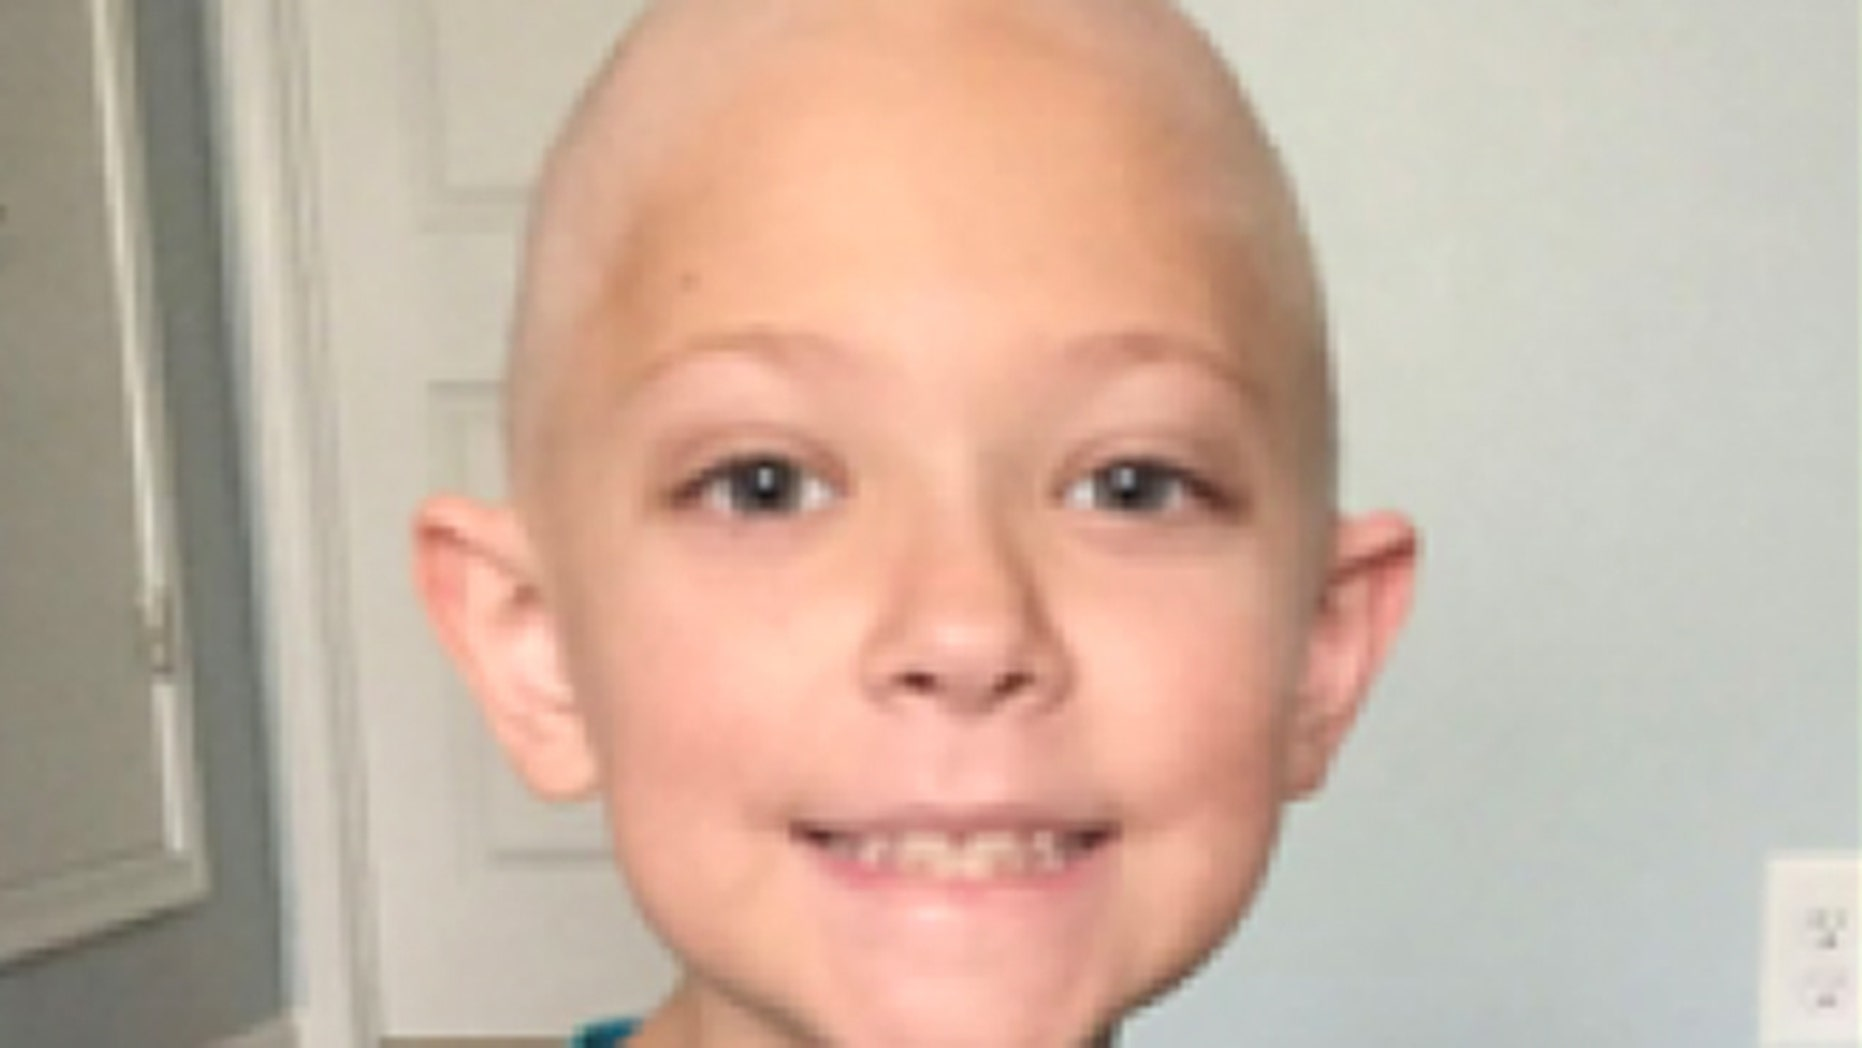 Mia Furrer was diagnosed with stage 3 Hodgkin's lymphoma